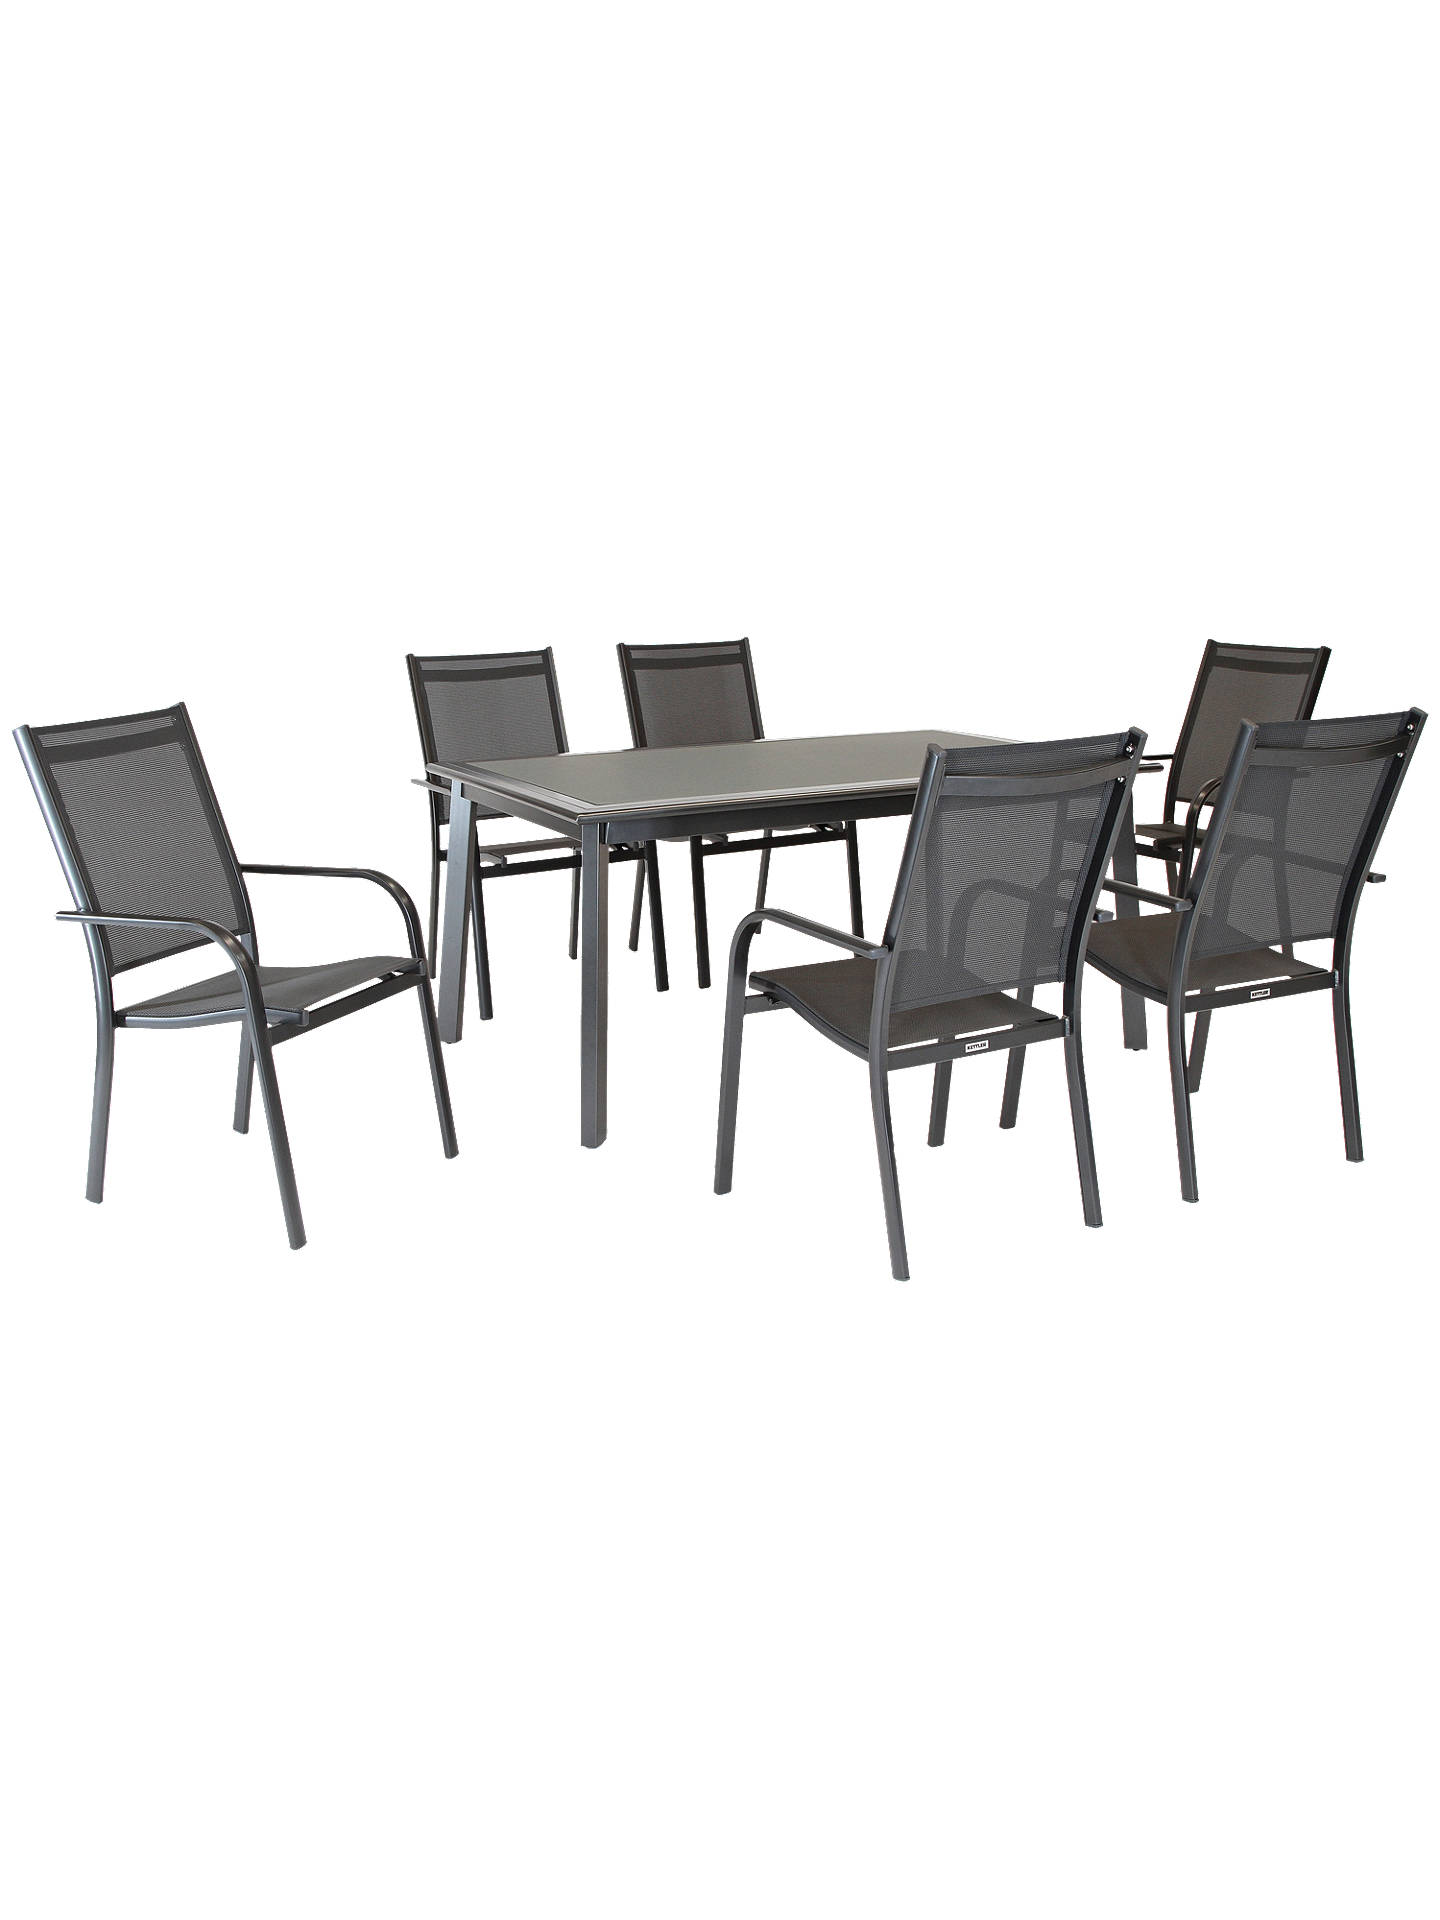 KETTLER Surf 6 Seater Garden Dining Table & Chairs Set at